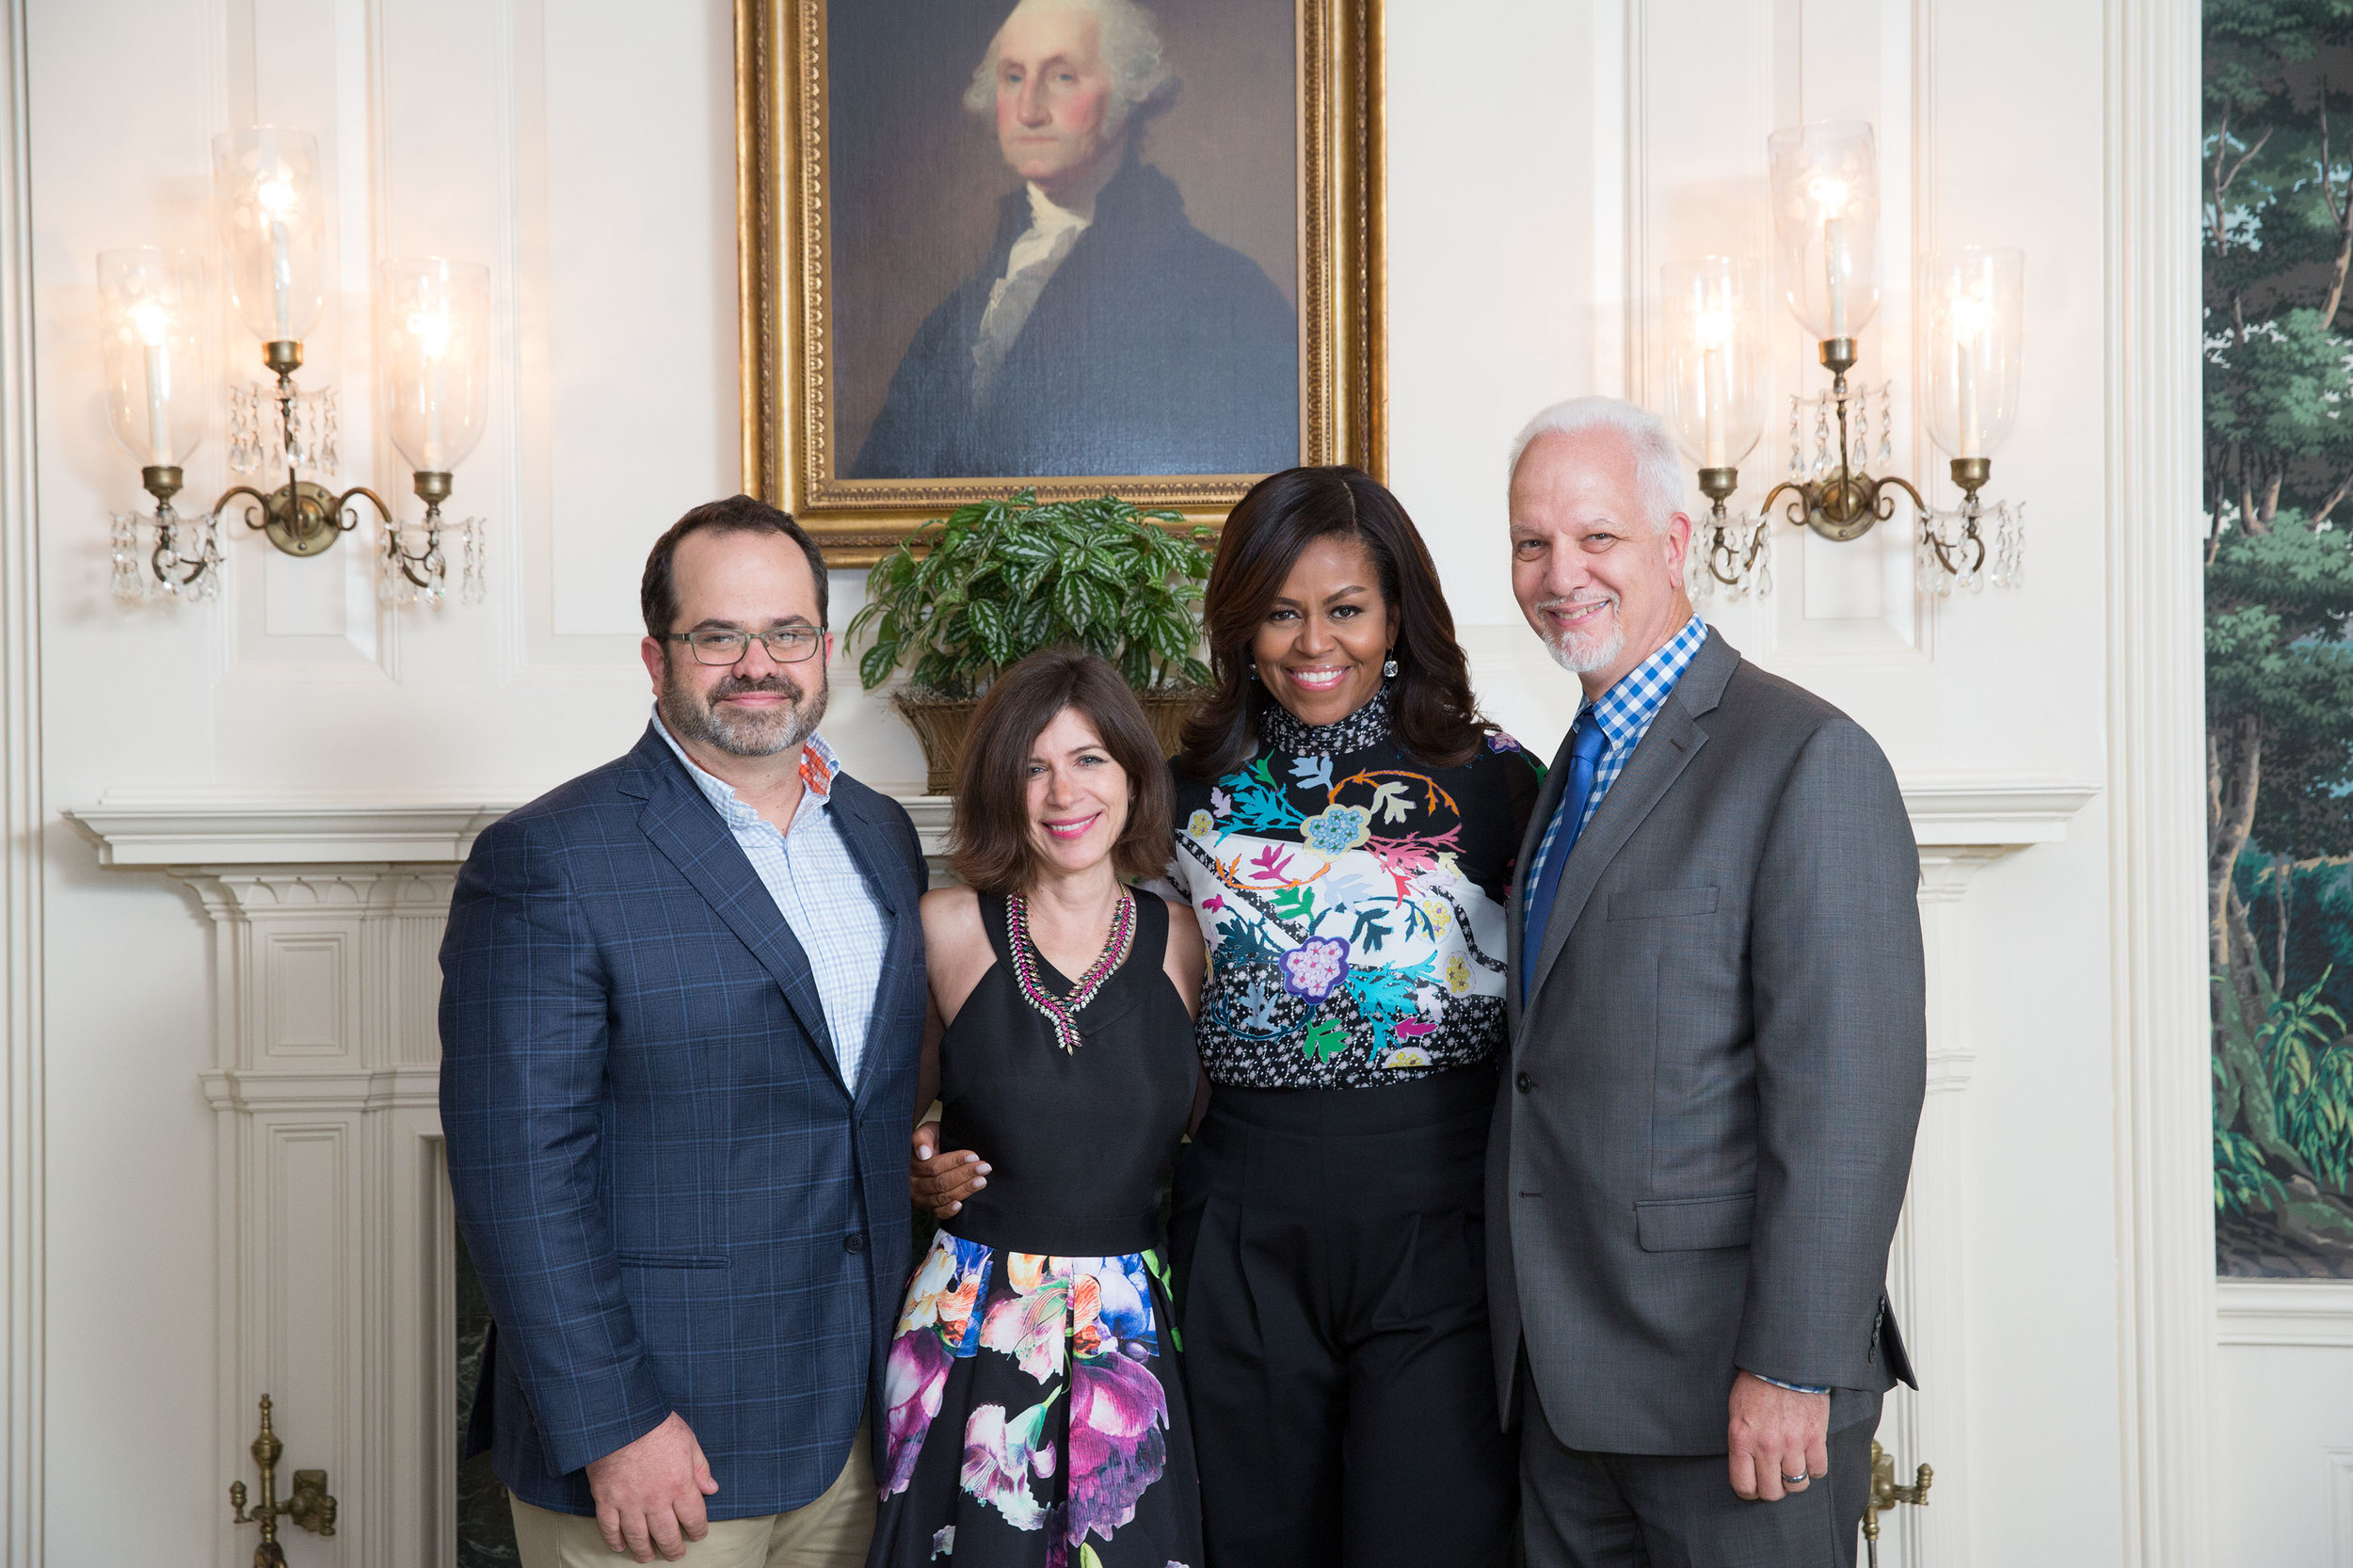 With Michelle Obama, Linda Olliver, and Michael Wilker in the White House.